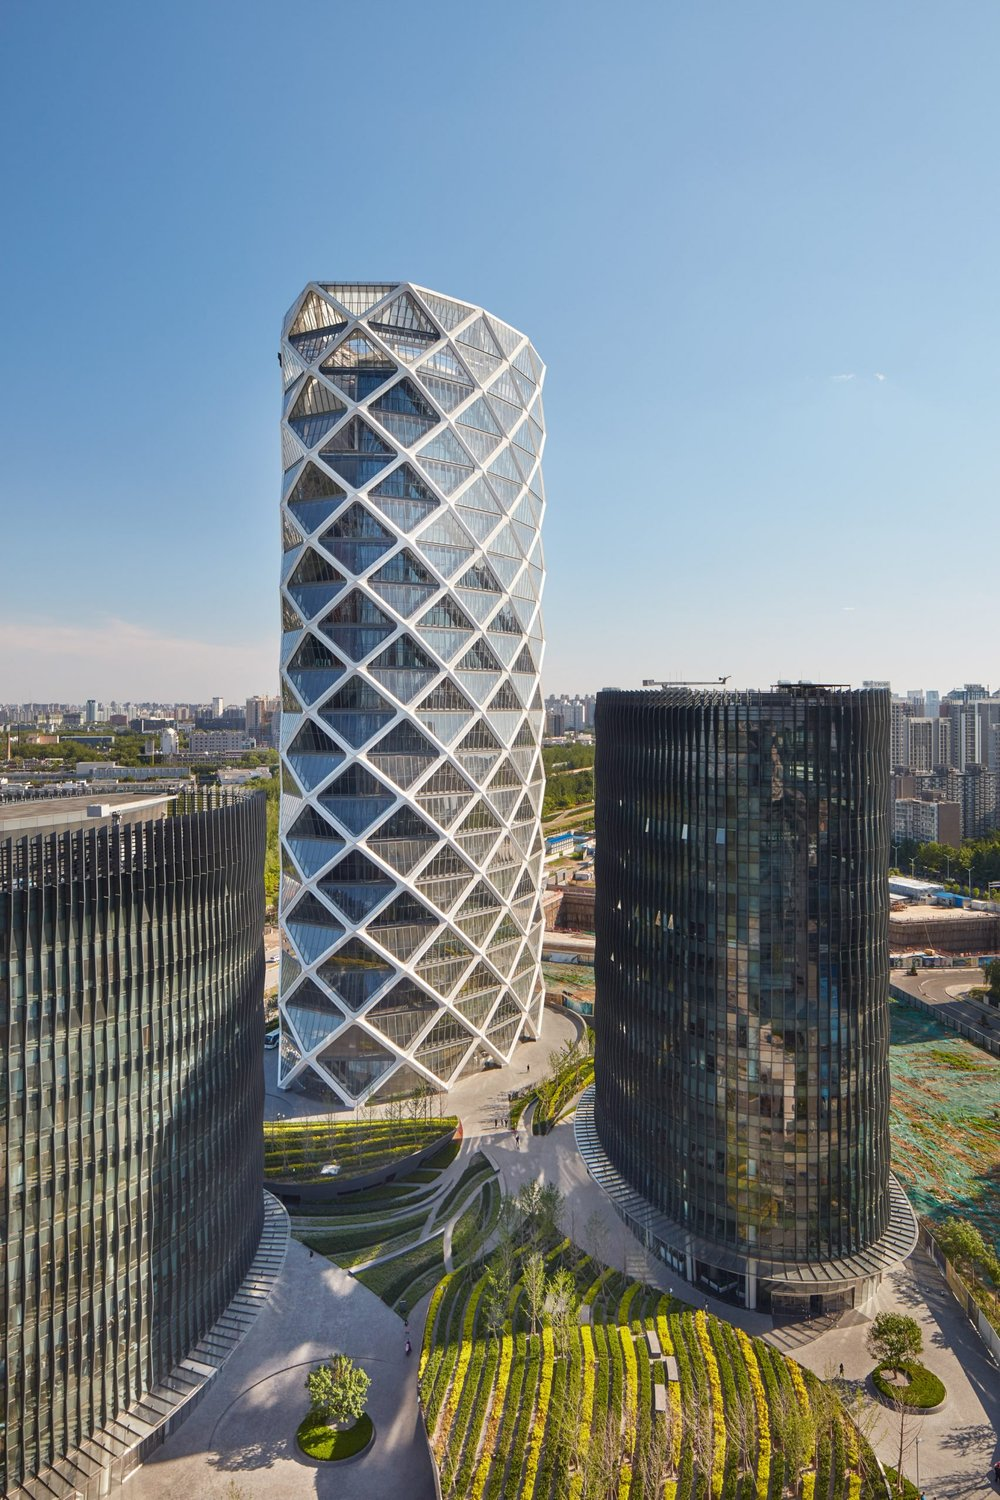 poly-international-plaza-som-architecture-beijing-china-towers_dezeen_2364_col_1-1-1704x2556.jpg